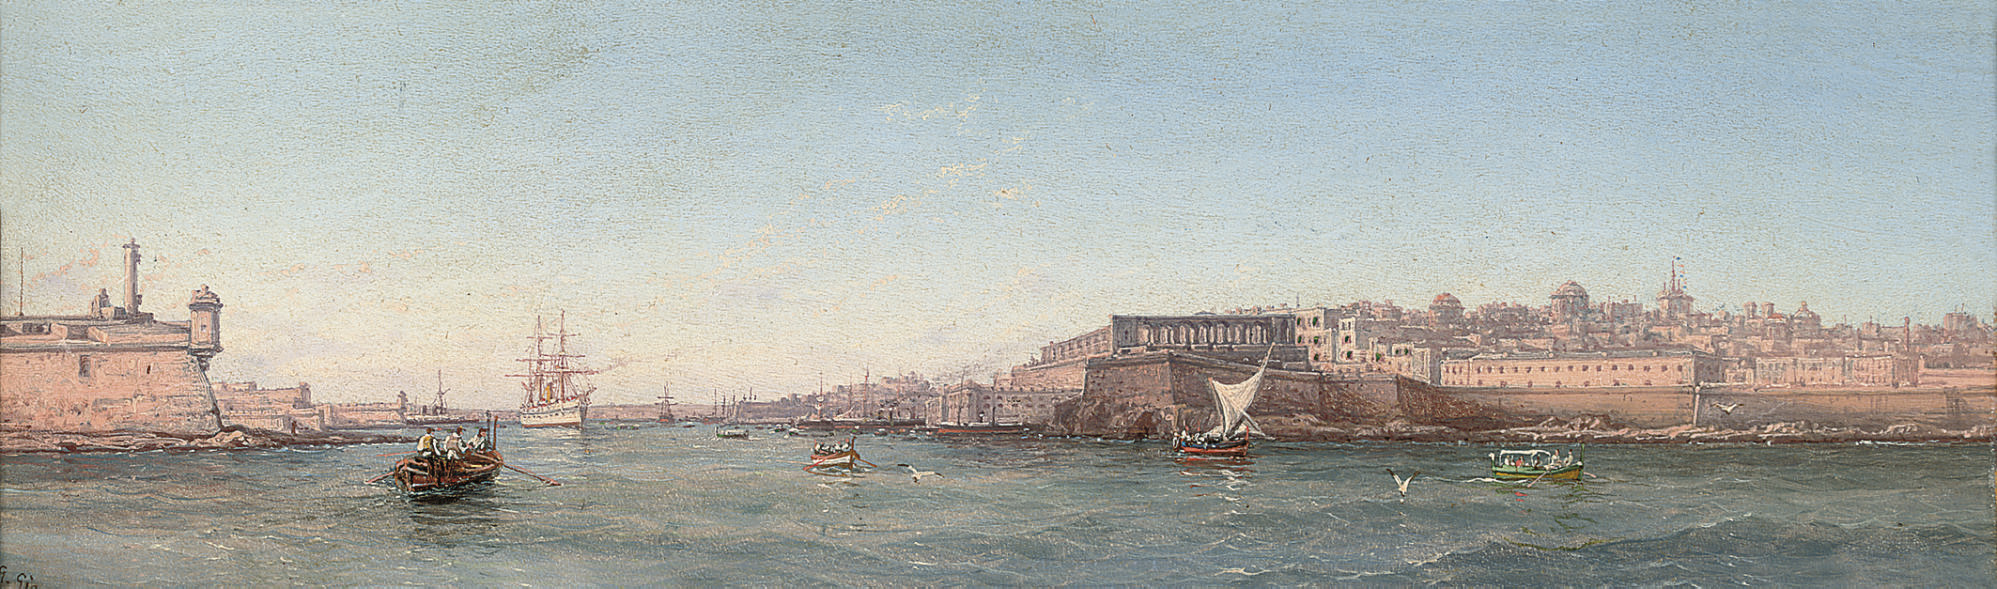 The entrance to the Grand Harbour from Ricasoli point, Valetta